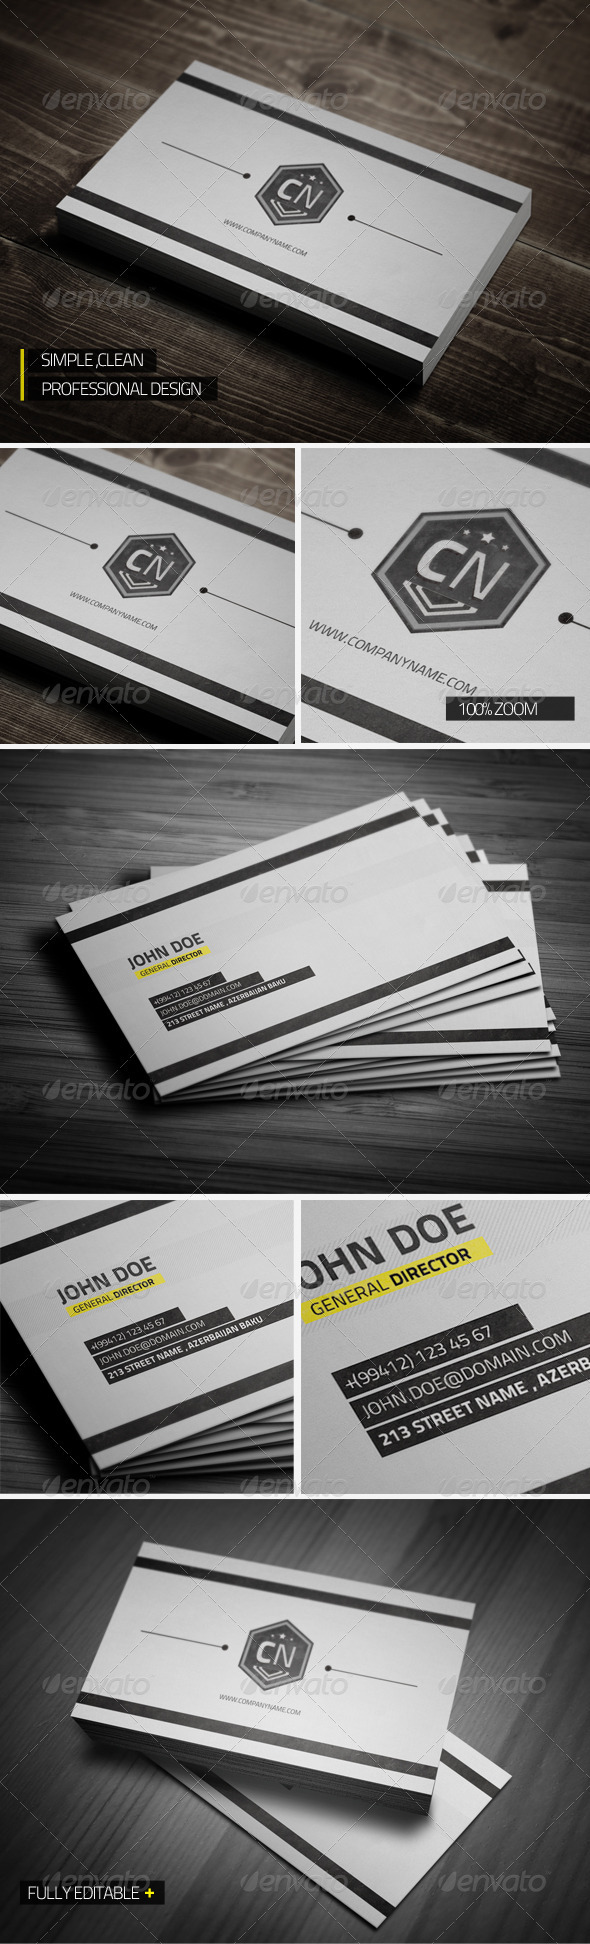 GraphicRiver Clean Professional Business Card 3118367